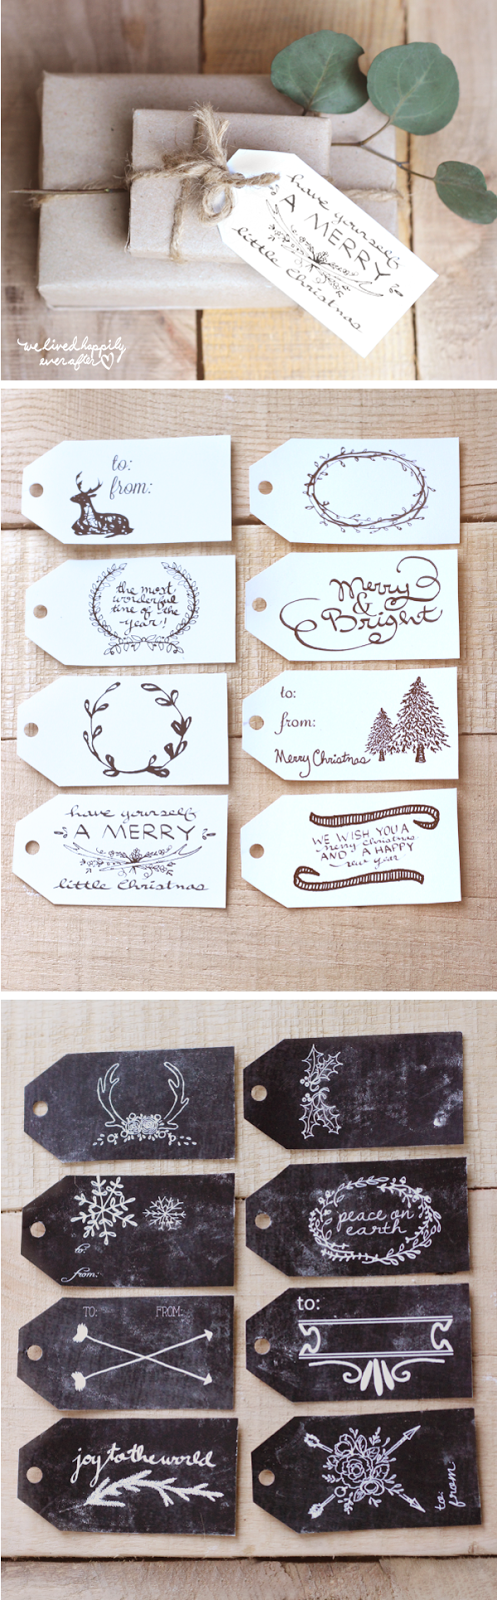 http://www.welivedhappilyeverafter.com/2014/11/free-christmas-gift-tag-printables.html